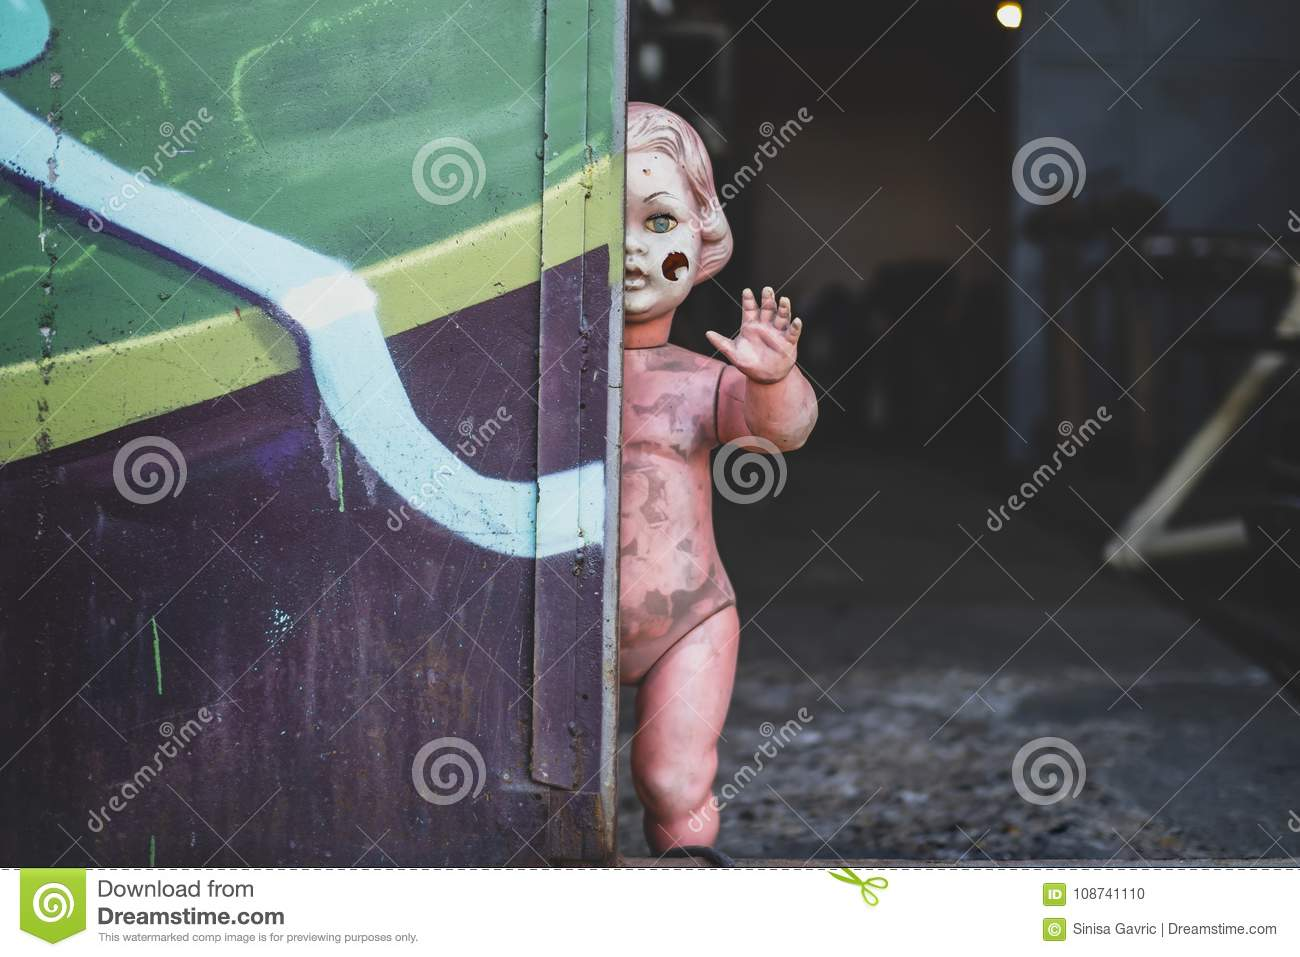 Dirty plastic naked baby doll standing by the door at the metal shop looking eerie and hunted weaving